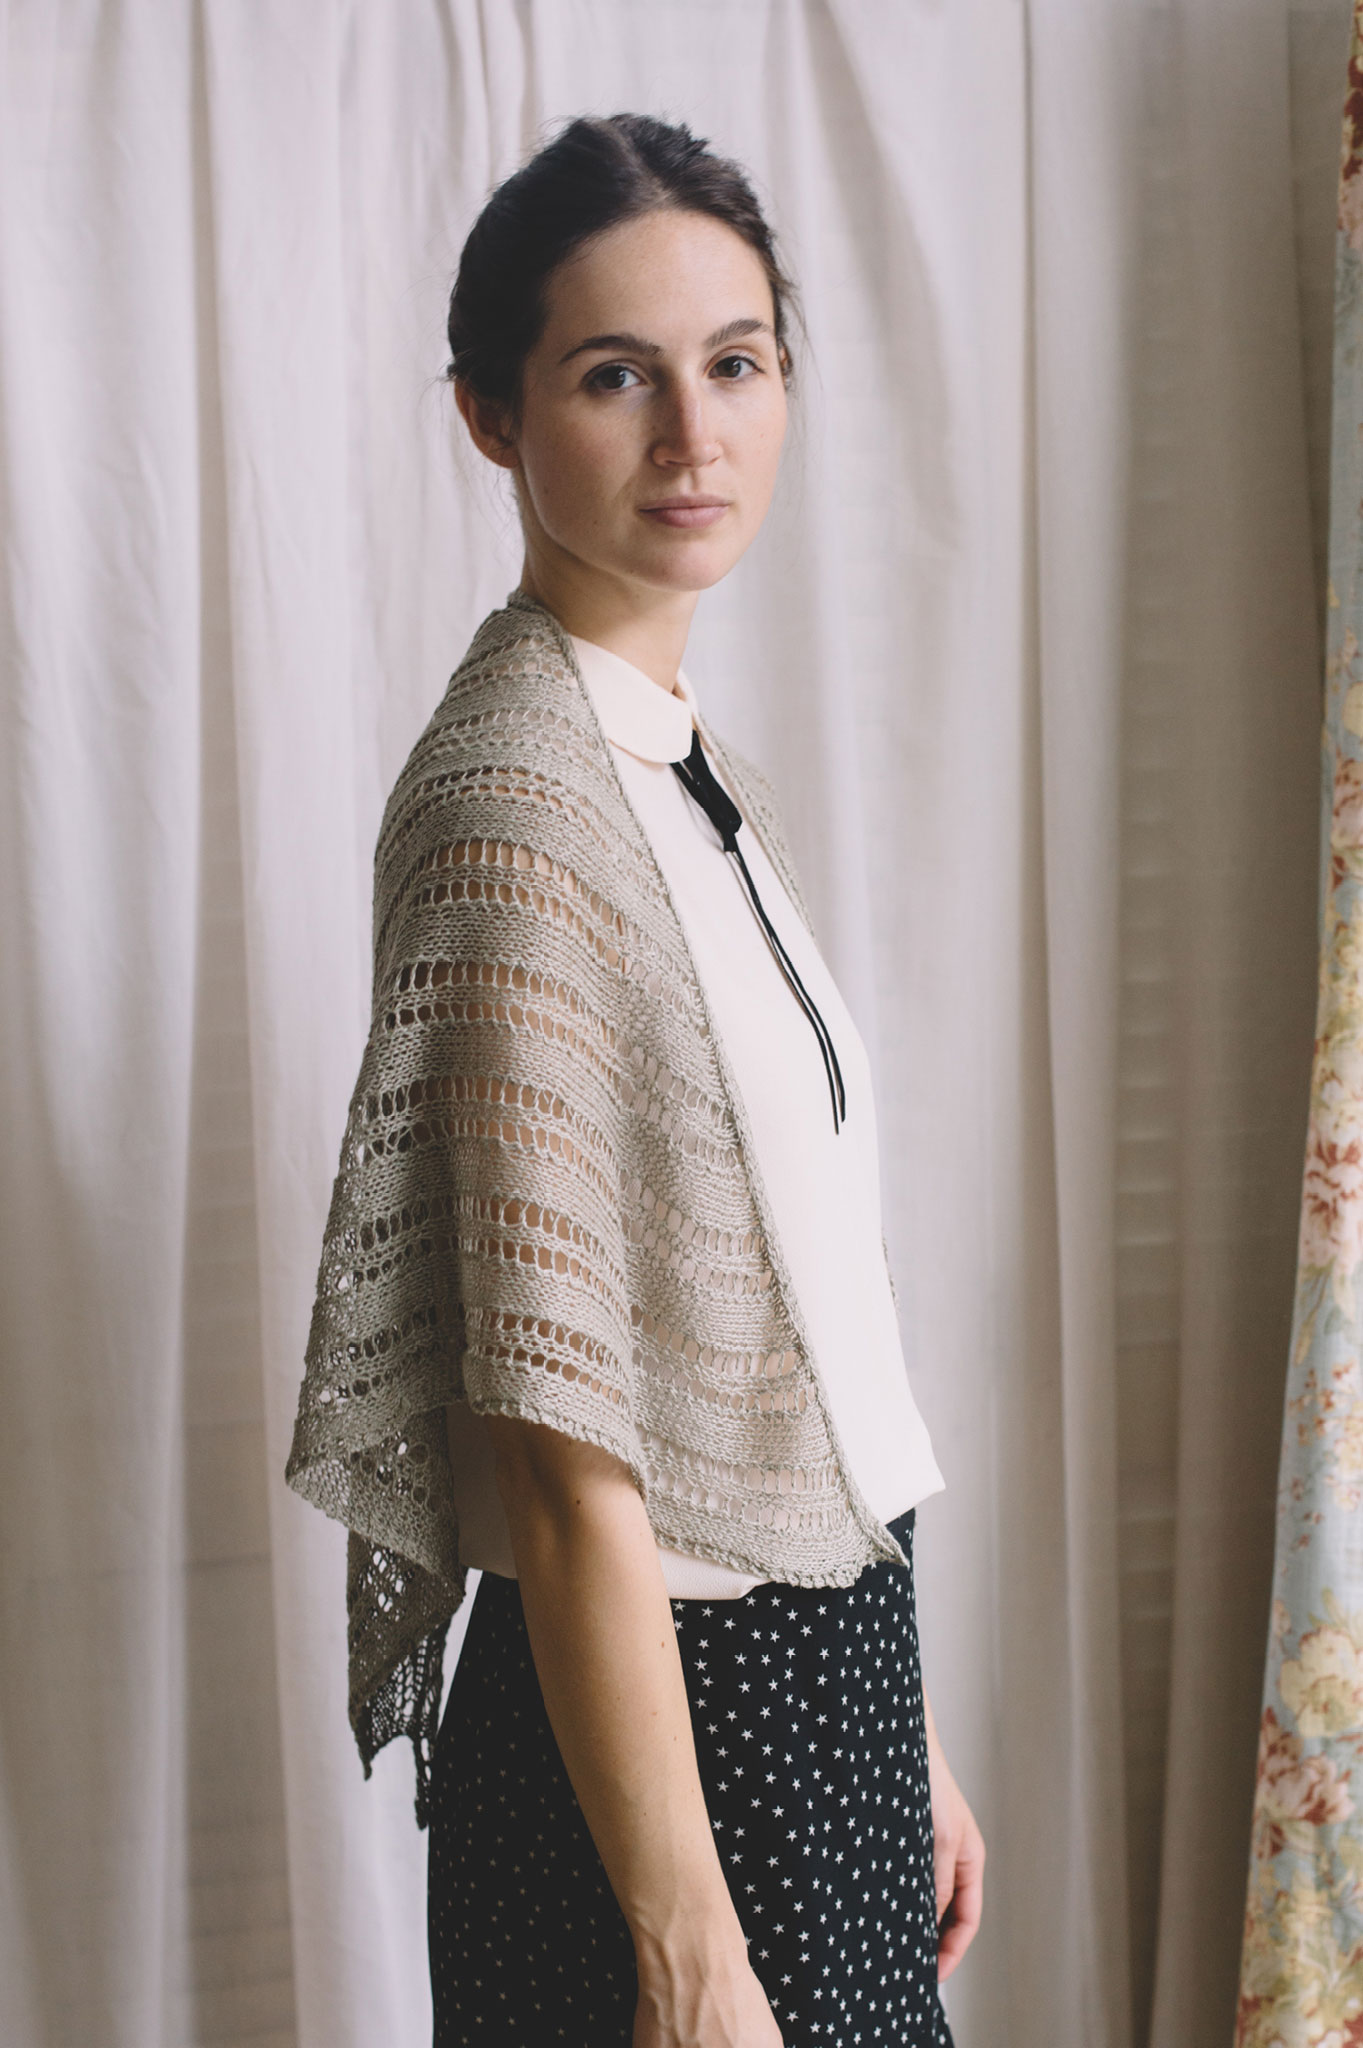 quince-and-co-reed-leah-b-thibault-knitting-pattern-sparrow-1.jpg